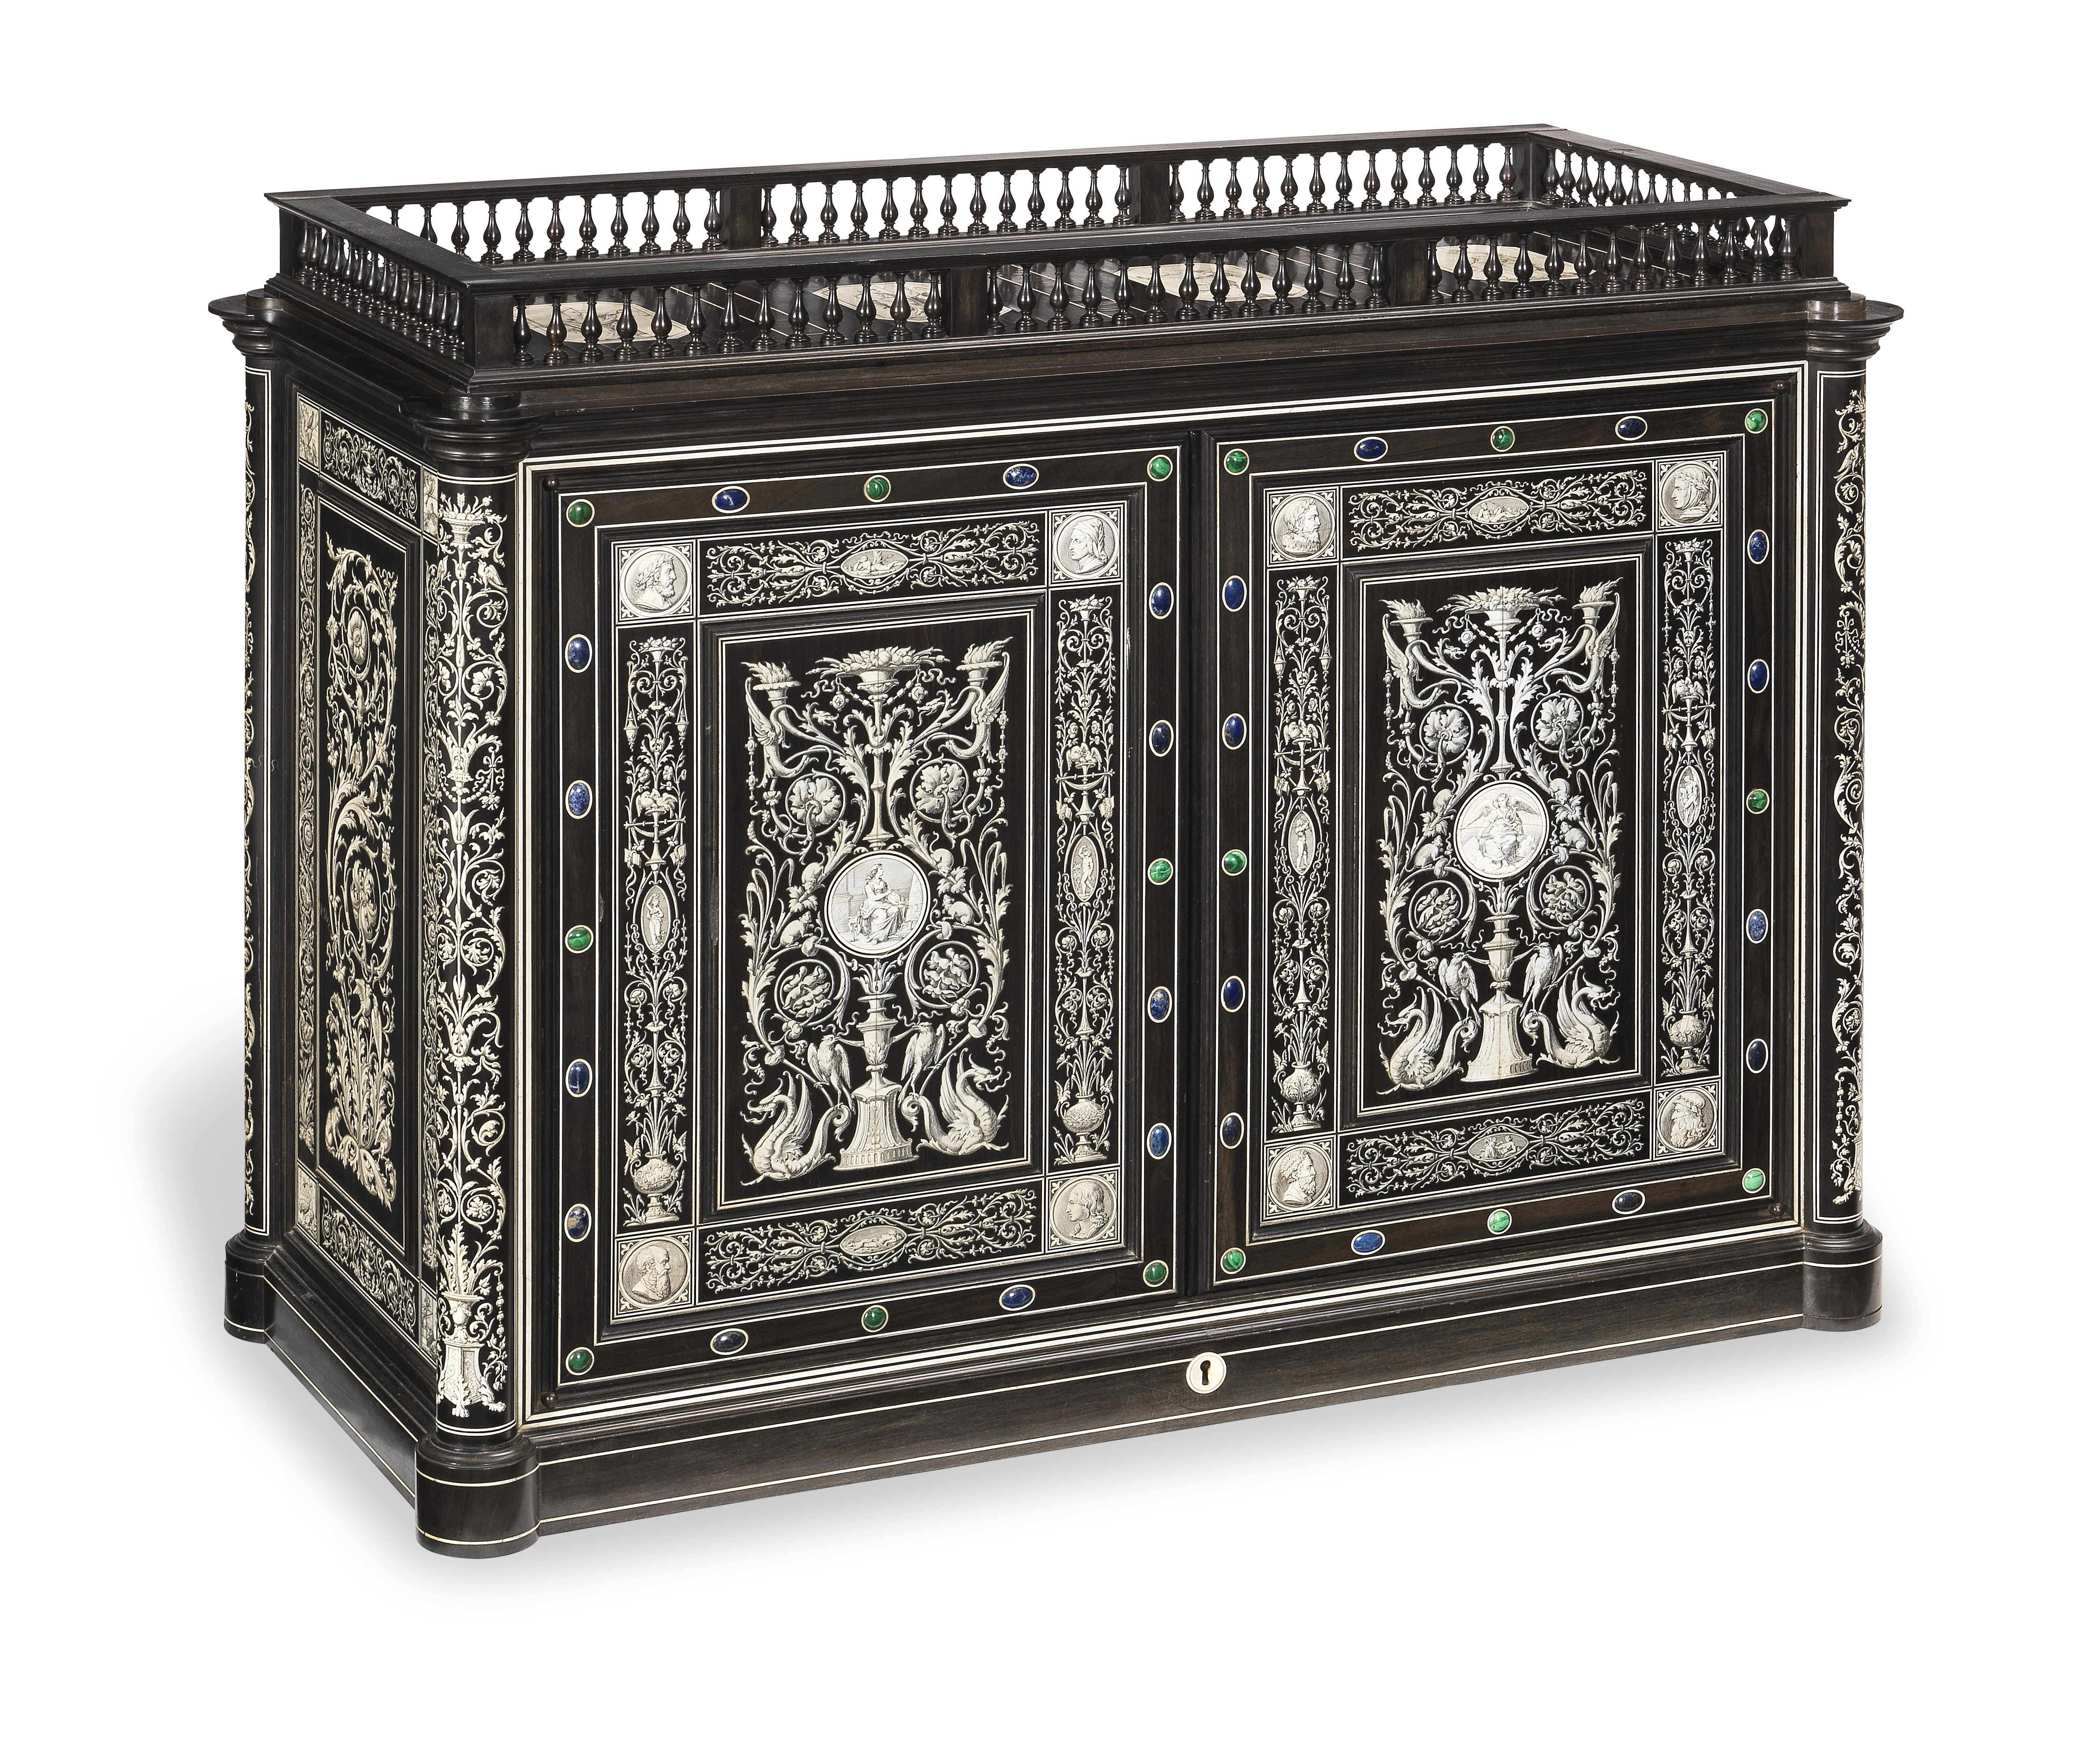 Lot 16 - An Italian 19th century Renaissance revival hardstone mounted ebony and engraved ivory marquetry ...